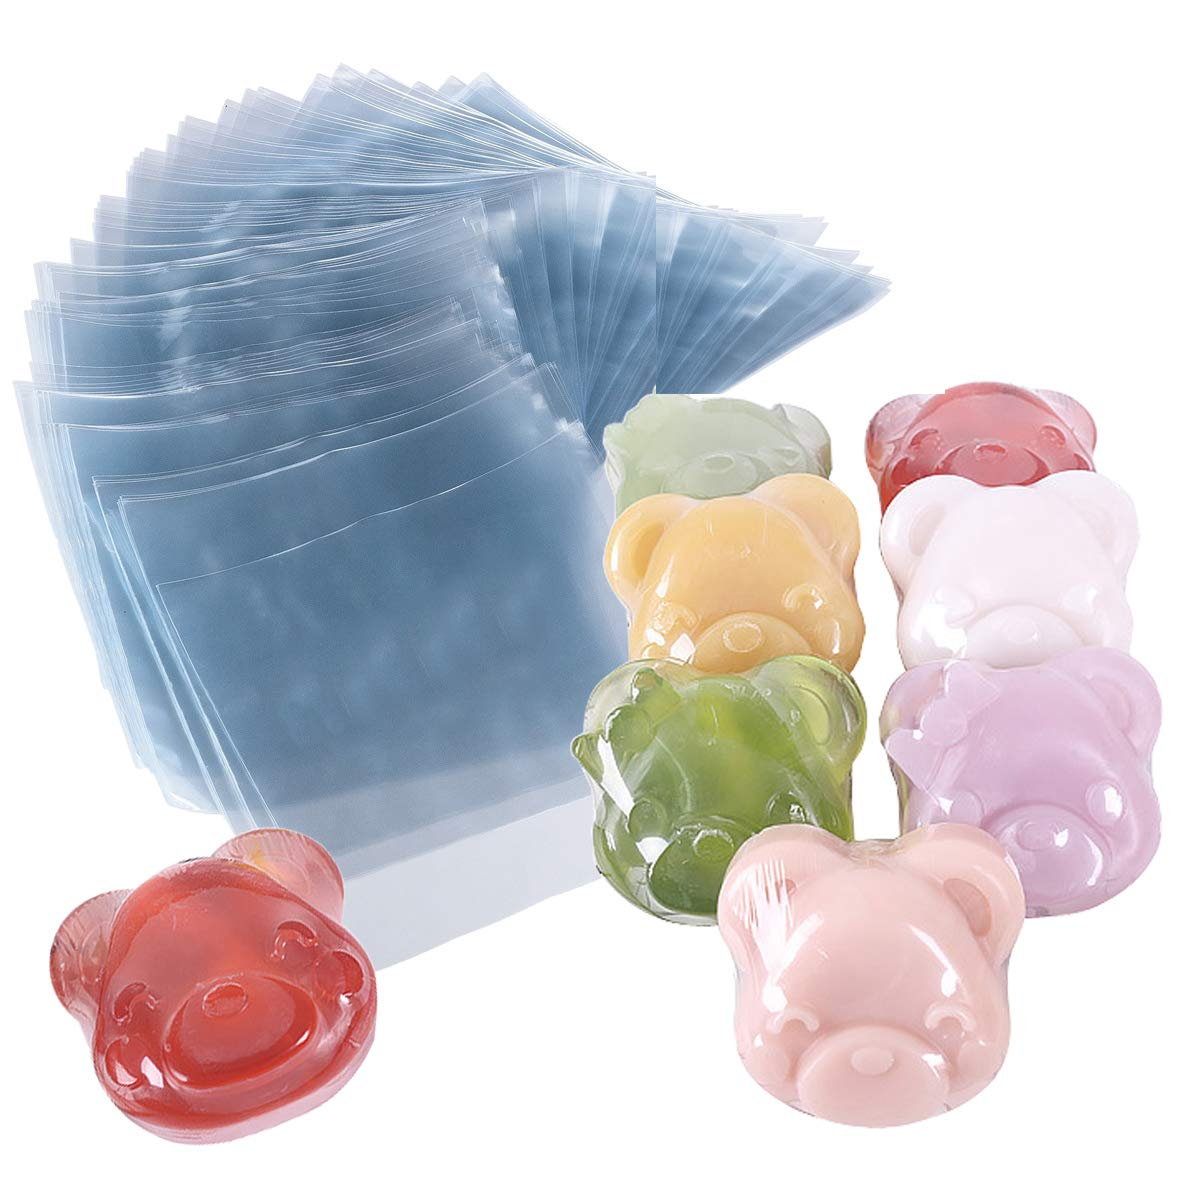 Shrink Bags 300 PCS Heat Shrink Wrap Bags 4 x 4 INCH & 100 Gauge for Wrapping Soaps, Oil & Homemade Gifts (4'' x 4'')